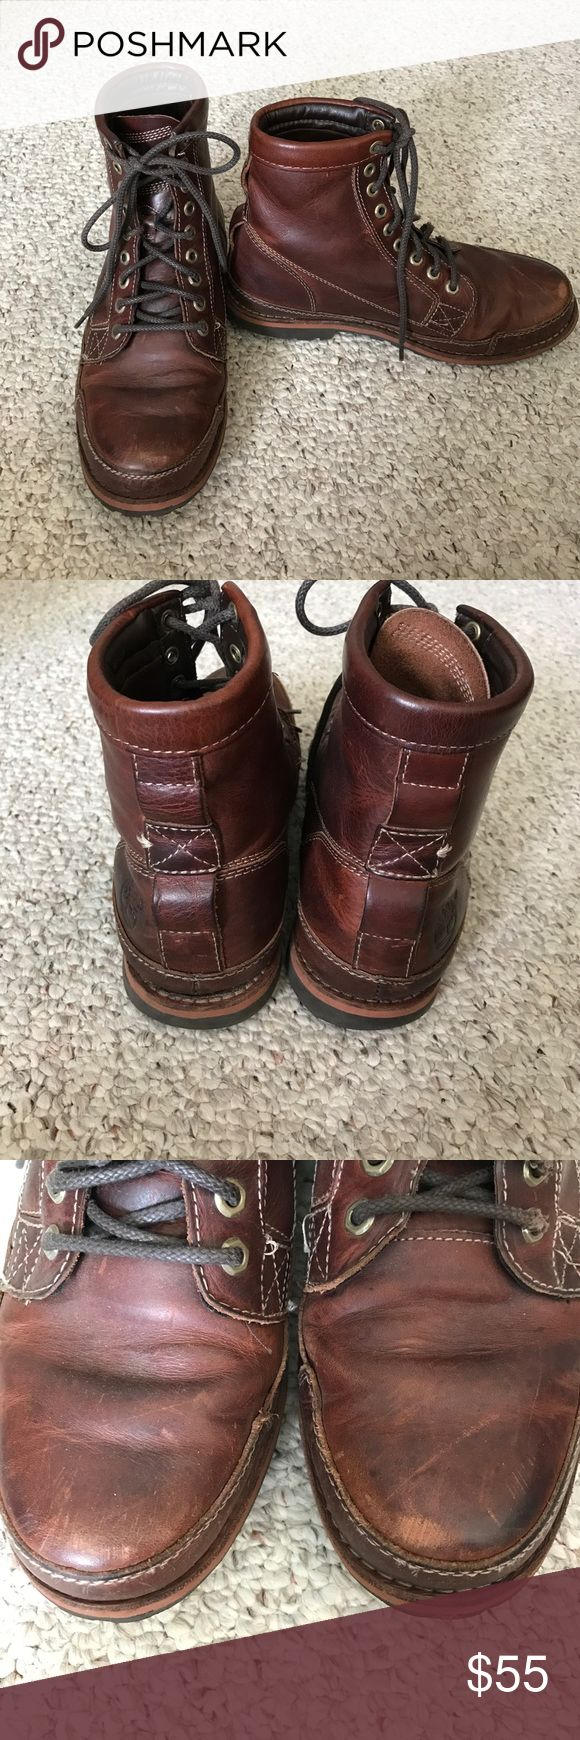 Men's Timberlands Boots, size 8.5 Men's Timberlands Boots, size 8.5. Only a few scuffs but it adds to the character of the boot. Timberland Shoes Boots